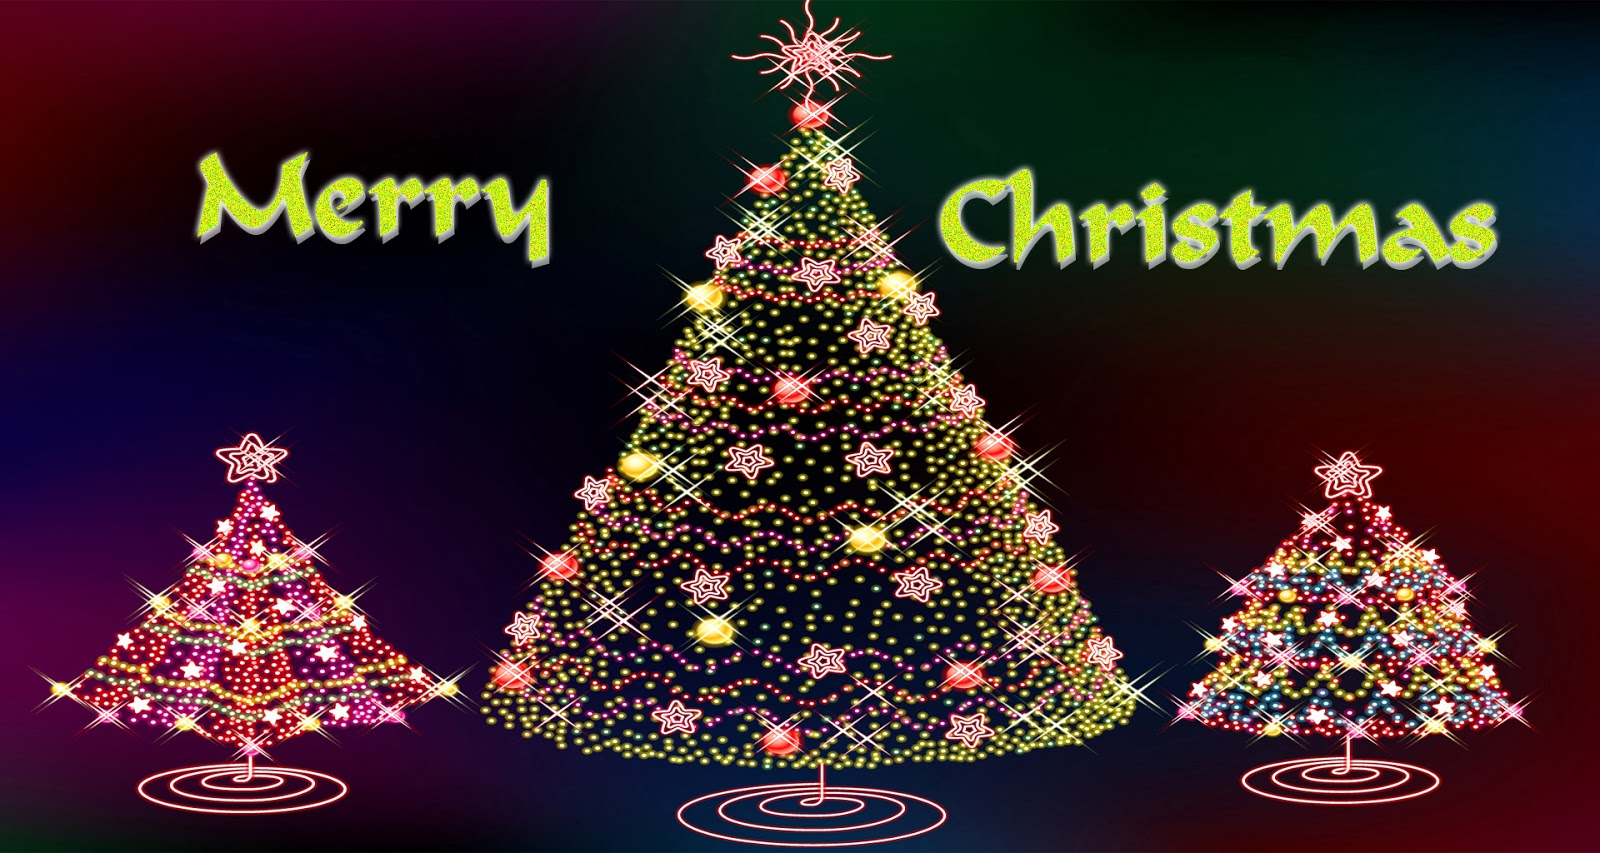 HD Wallpapers 1080p Merry Christmas Desktop Wallpapers 1600x853